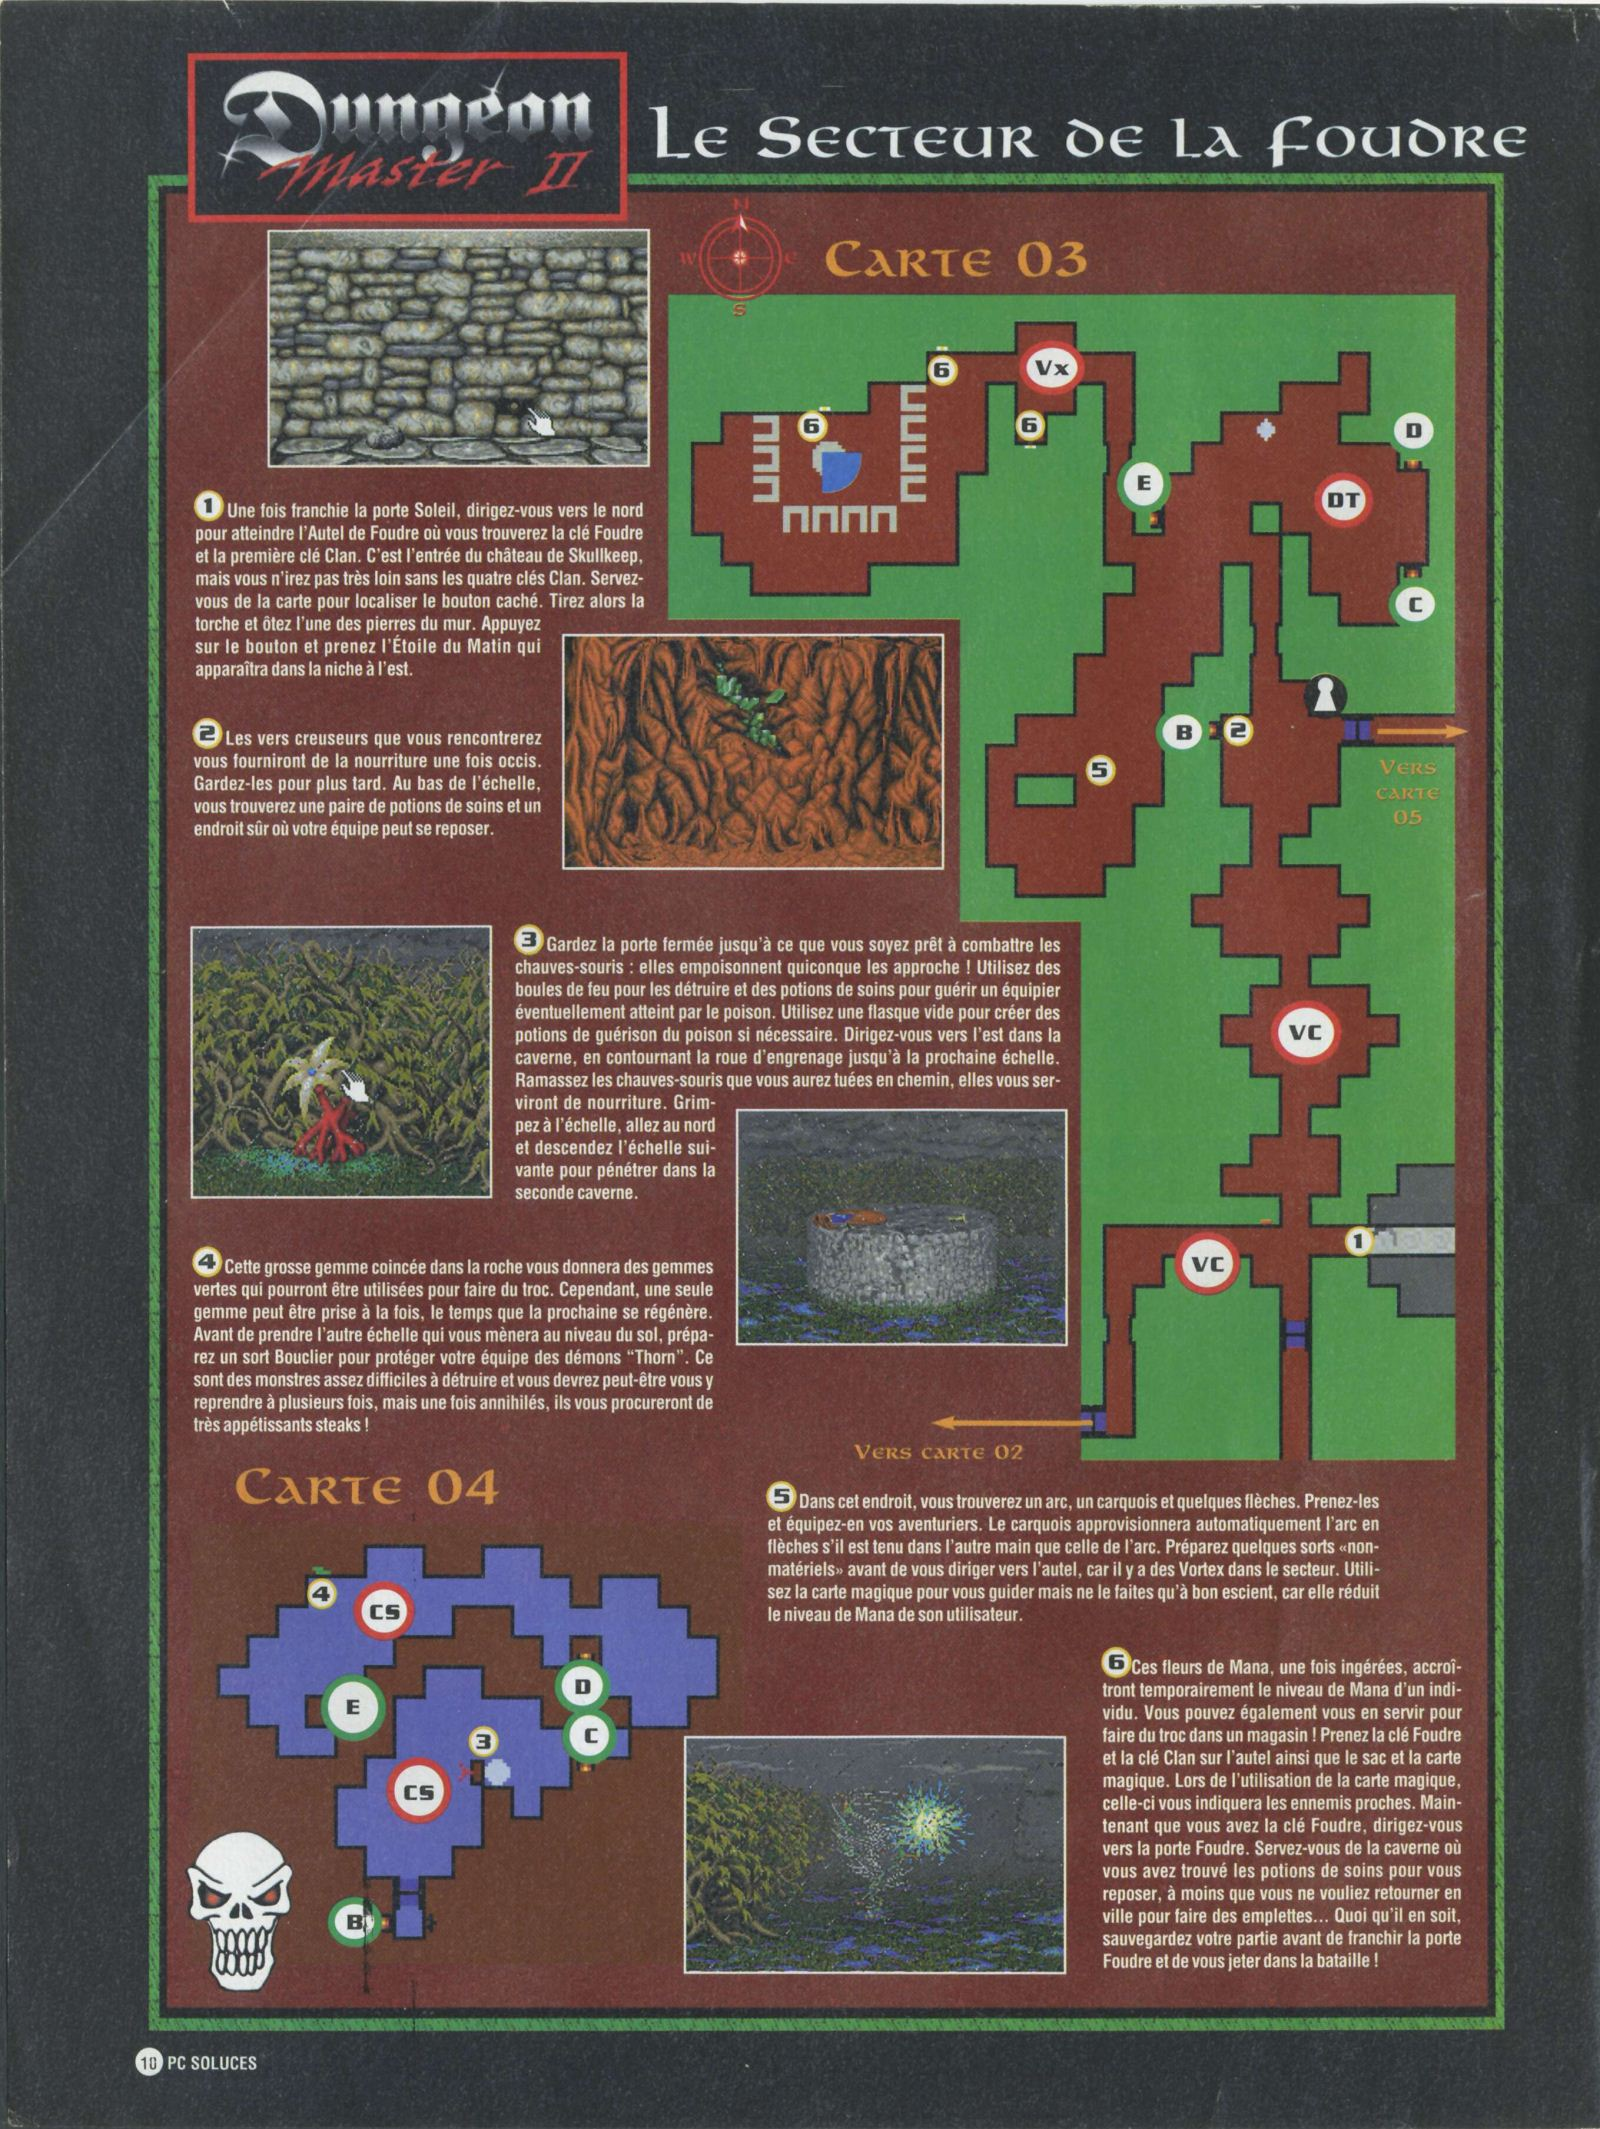 Dungeon Master II solution published in French magazine &amp;#039;PC Soluces&amp;#039;, Issue#1, February-March 1996, Page10